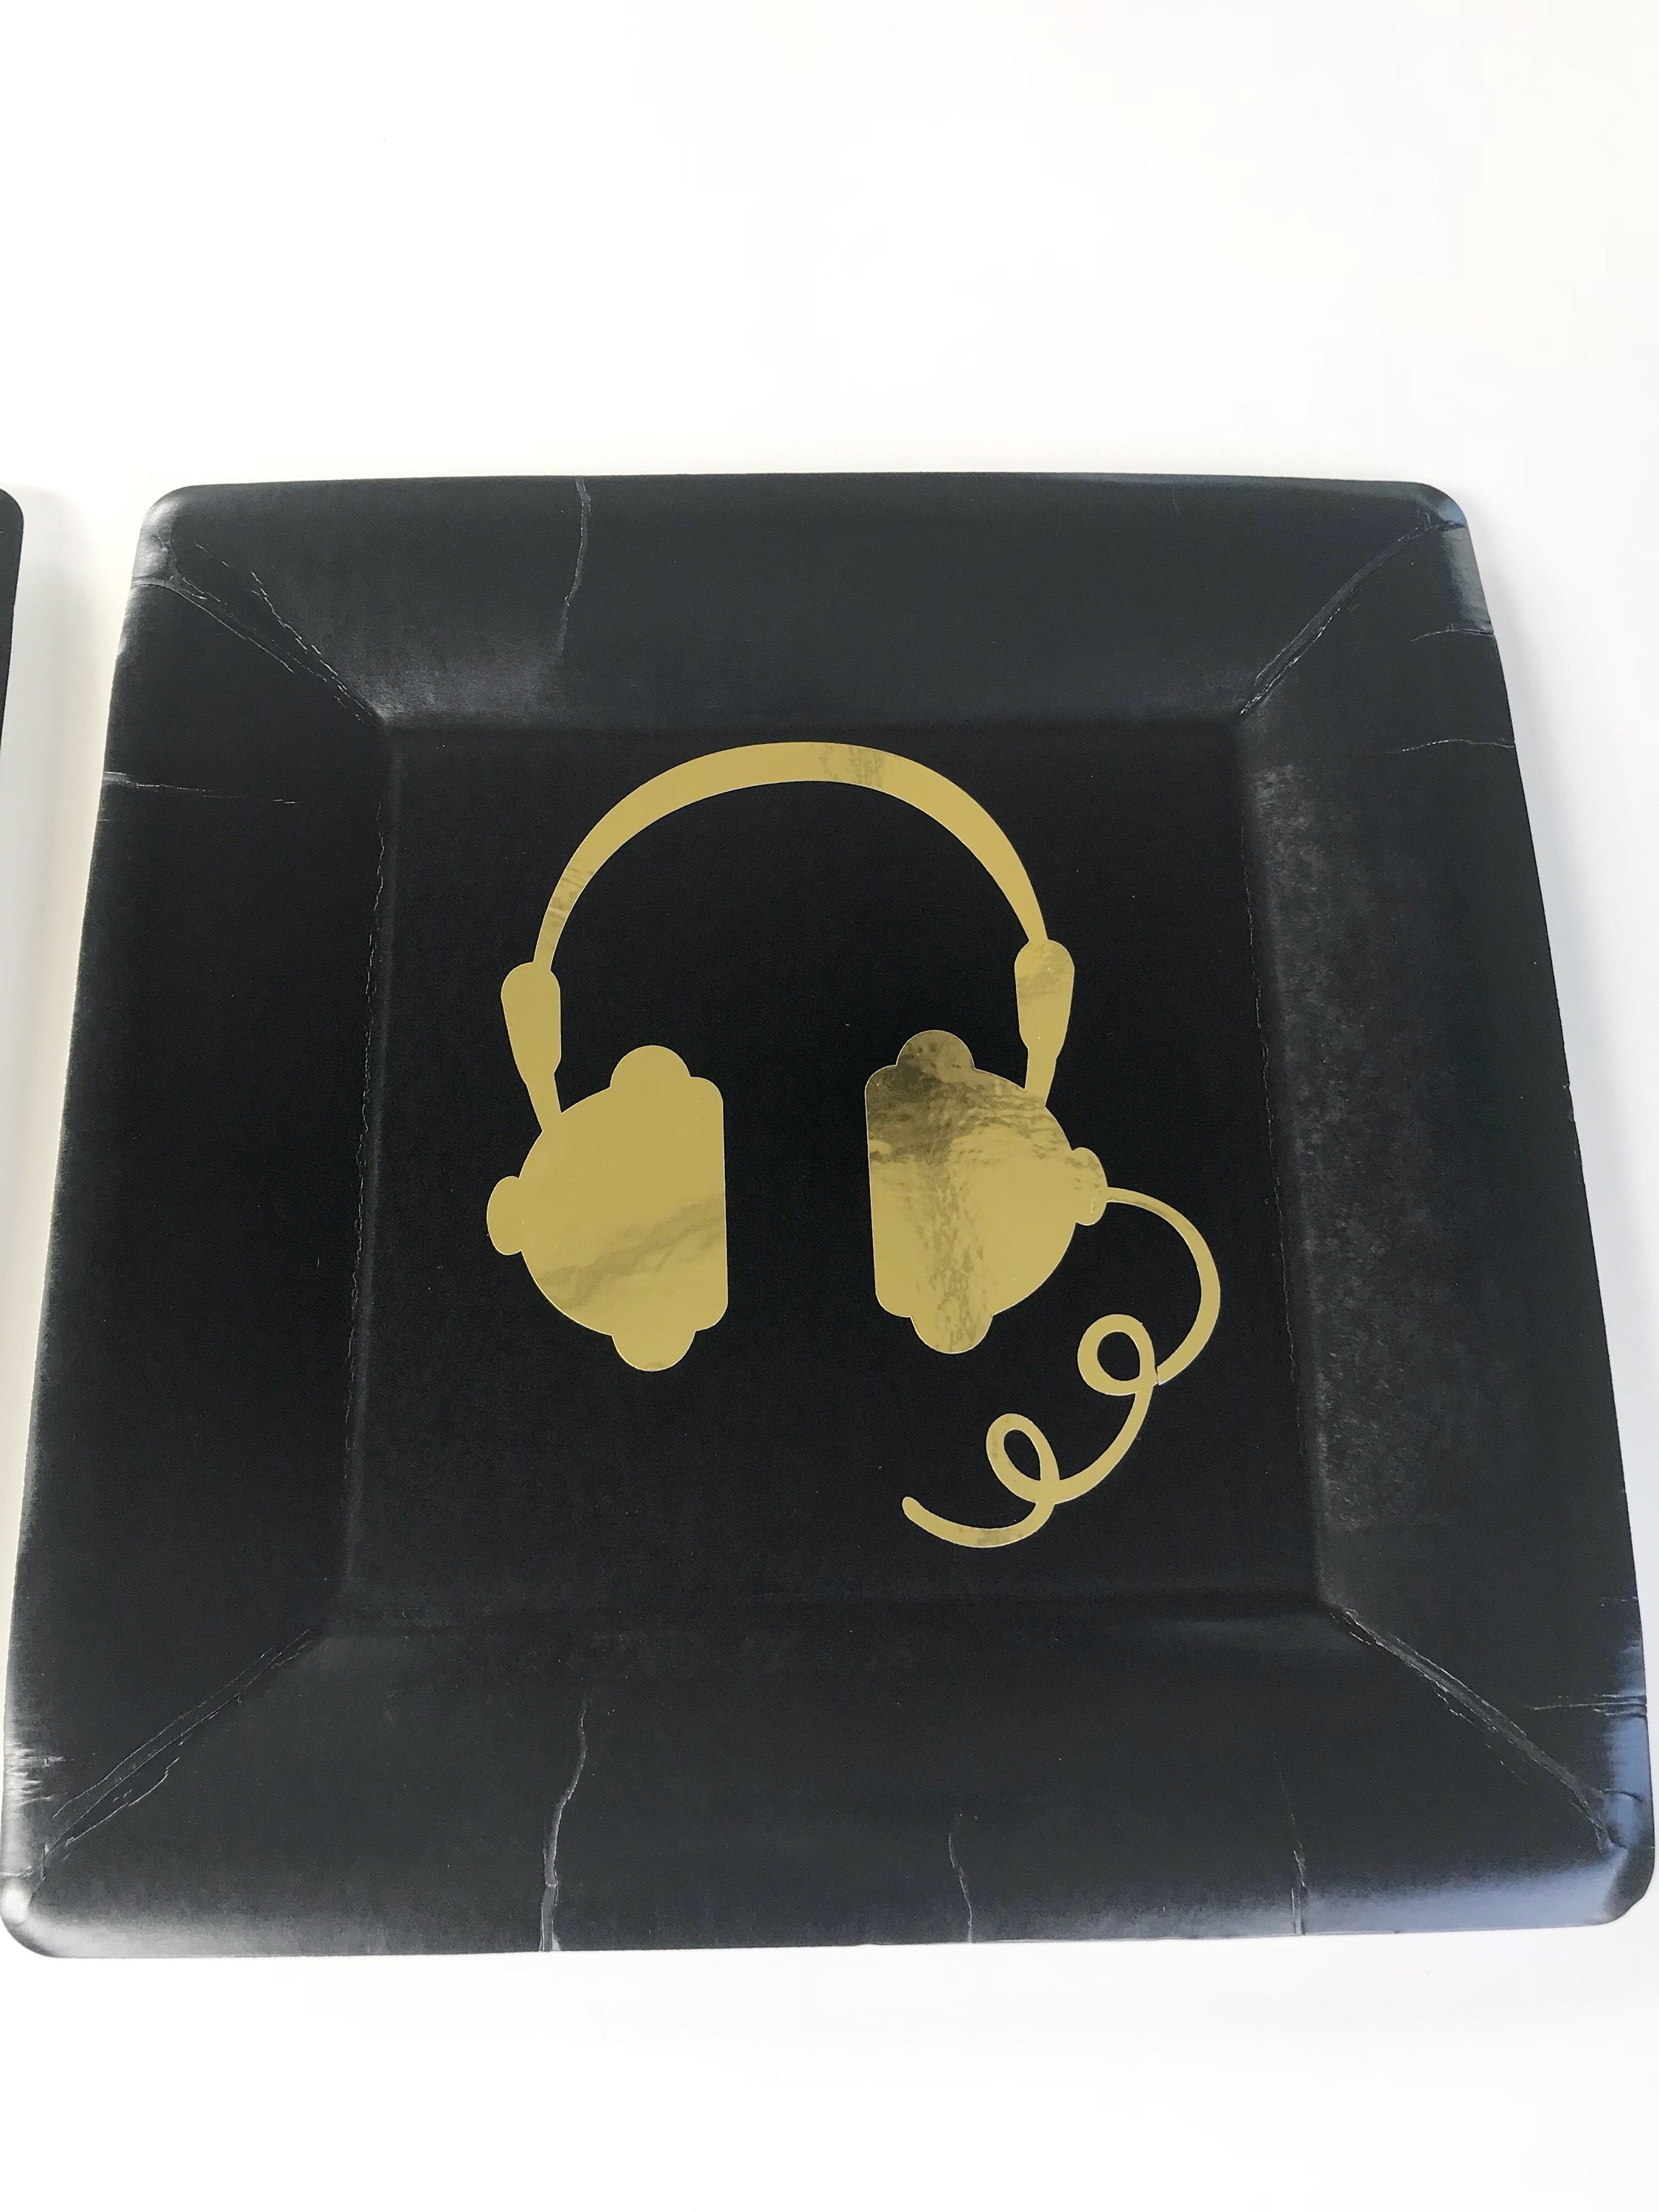 Metallic foil headphones paper plates in black